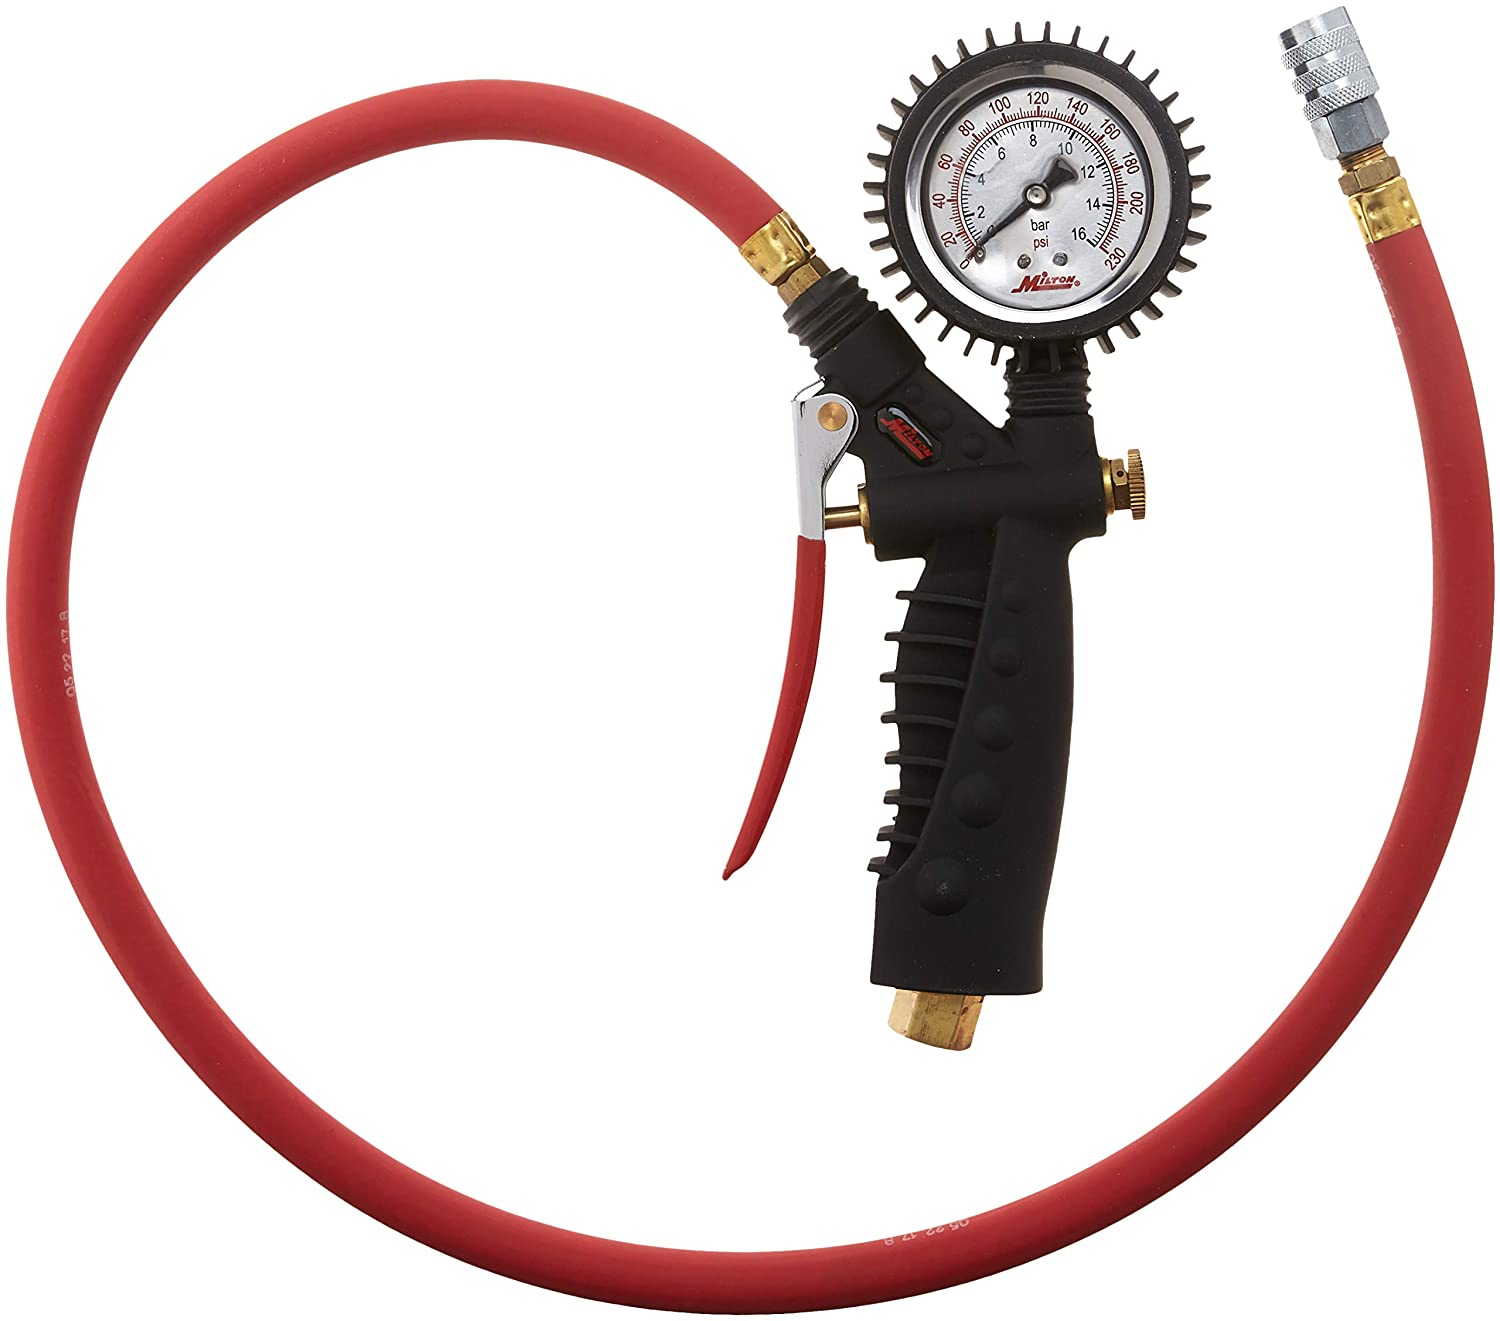 Milton Industries 572A Pro Analog Pistol Grip Inflator Gauge-36' Hose and Kwik Grip Safety Chuck-160 PSI